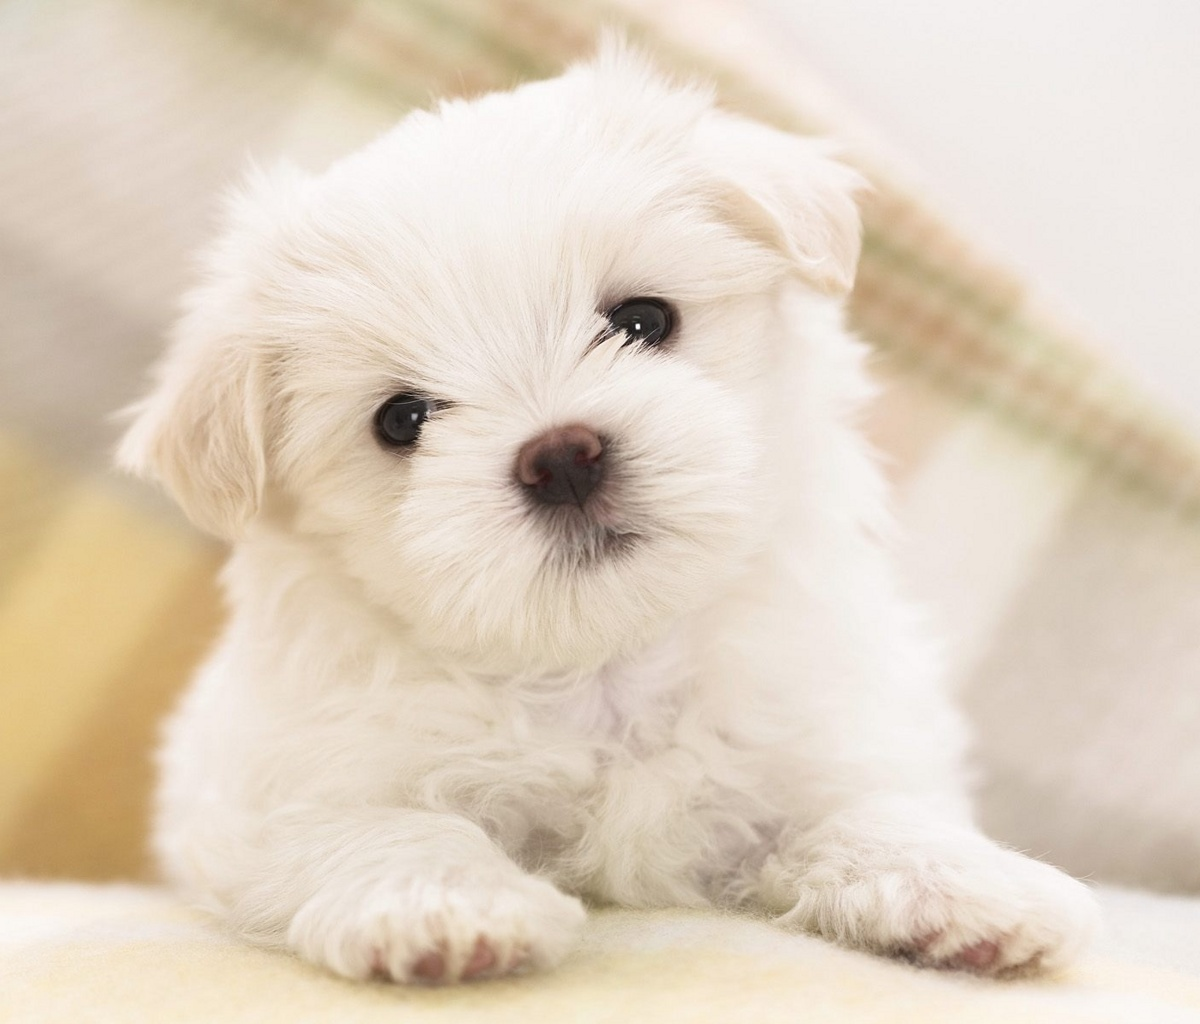 Free Download Free 1200X1024 Cute Dog 1200x1024 Wallpaper